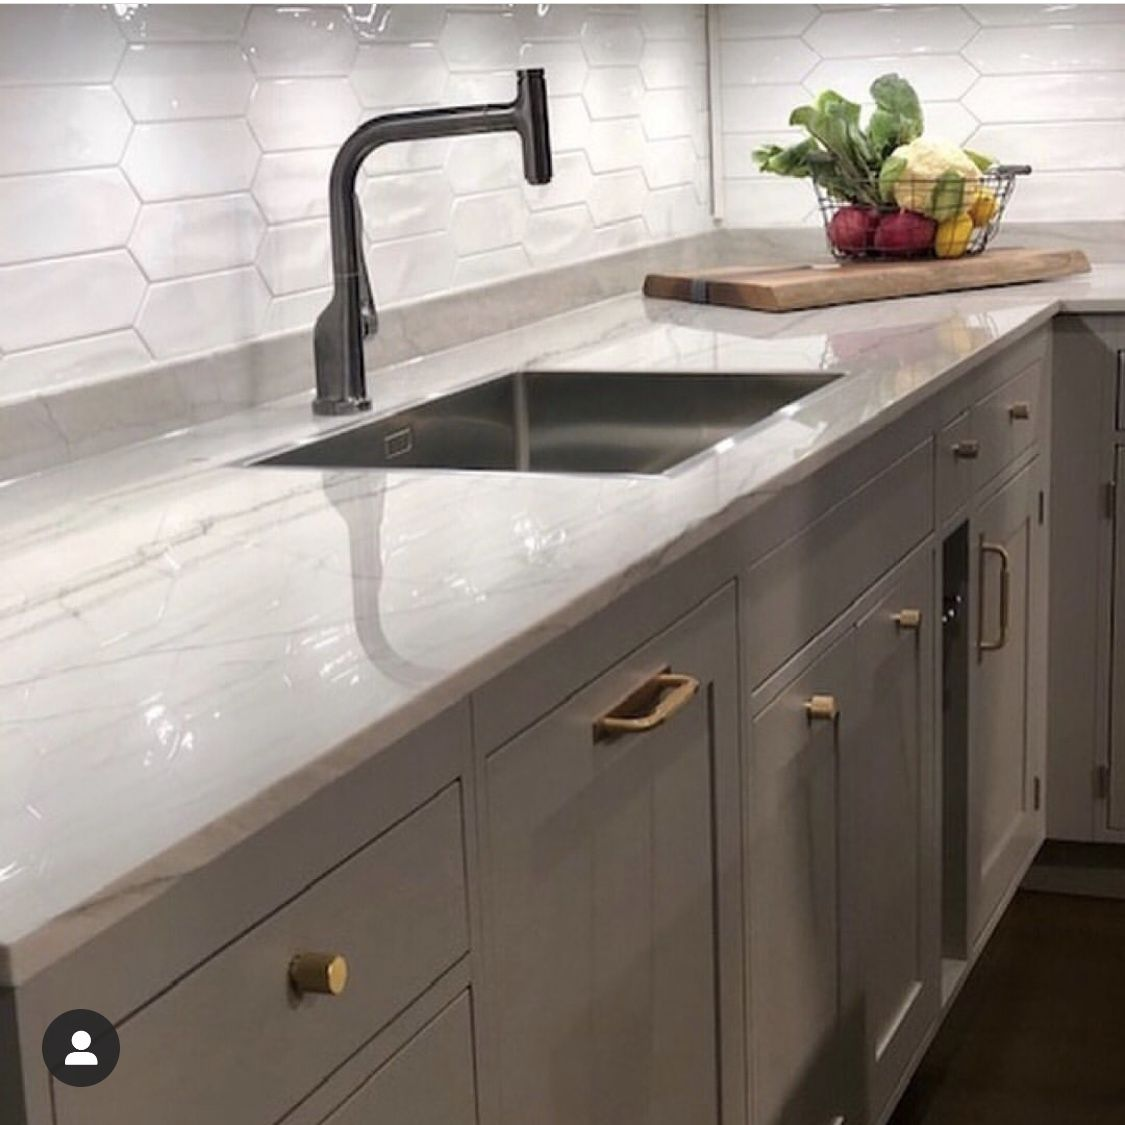 Rocky Tops Custom Countertops Granite Countertop Chattanooga At Rocky Tops Is The Best Choice For Reside In 2020 Kitchen Installation Custom Countertops Kitchen Design